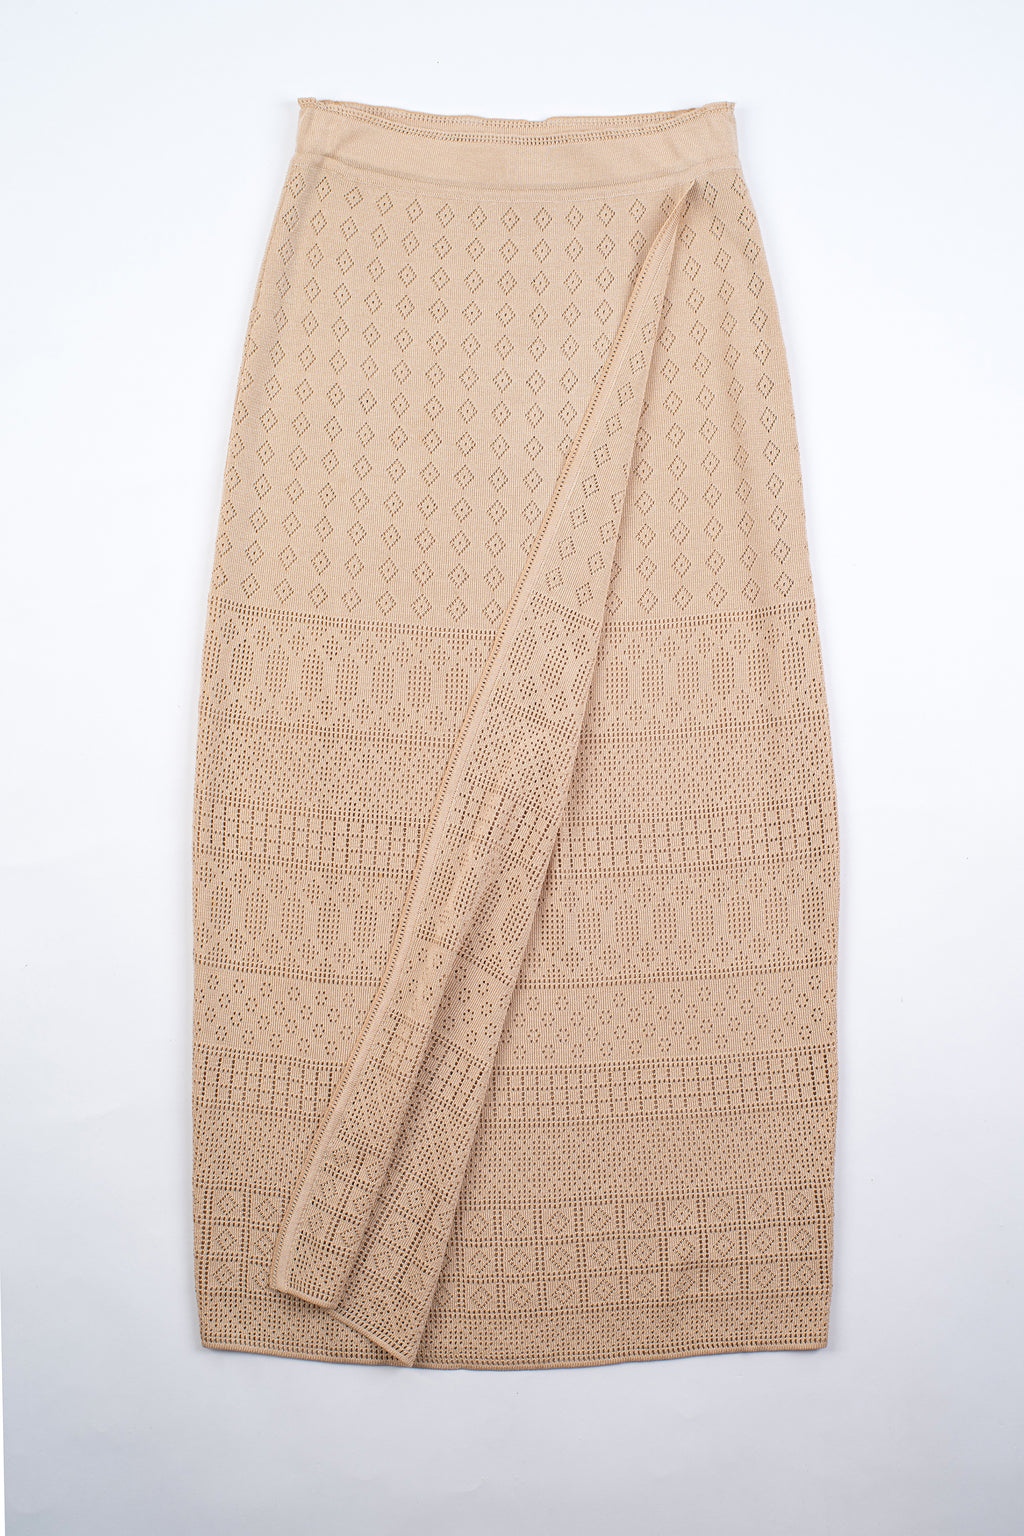 Escada Vintage Beige Crochet Knit Silk Blend Wrap Skirt, S